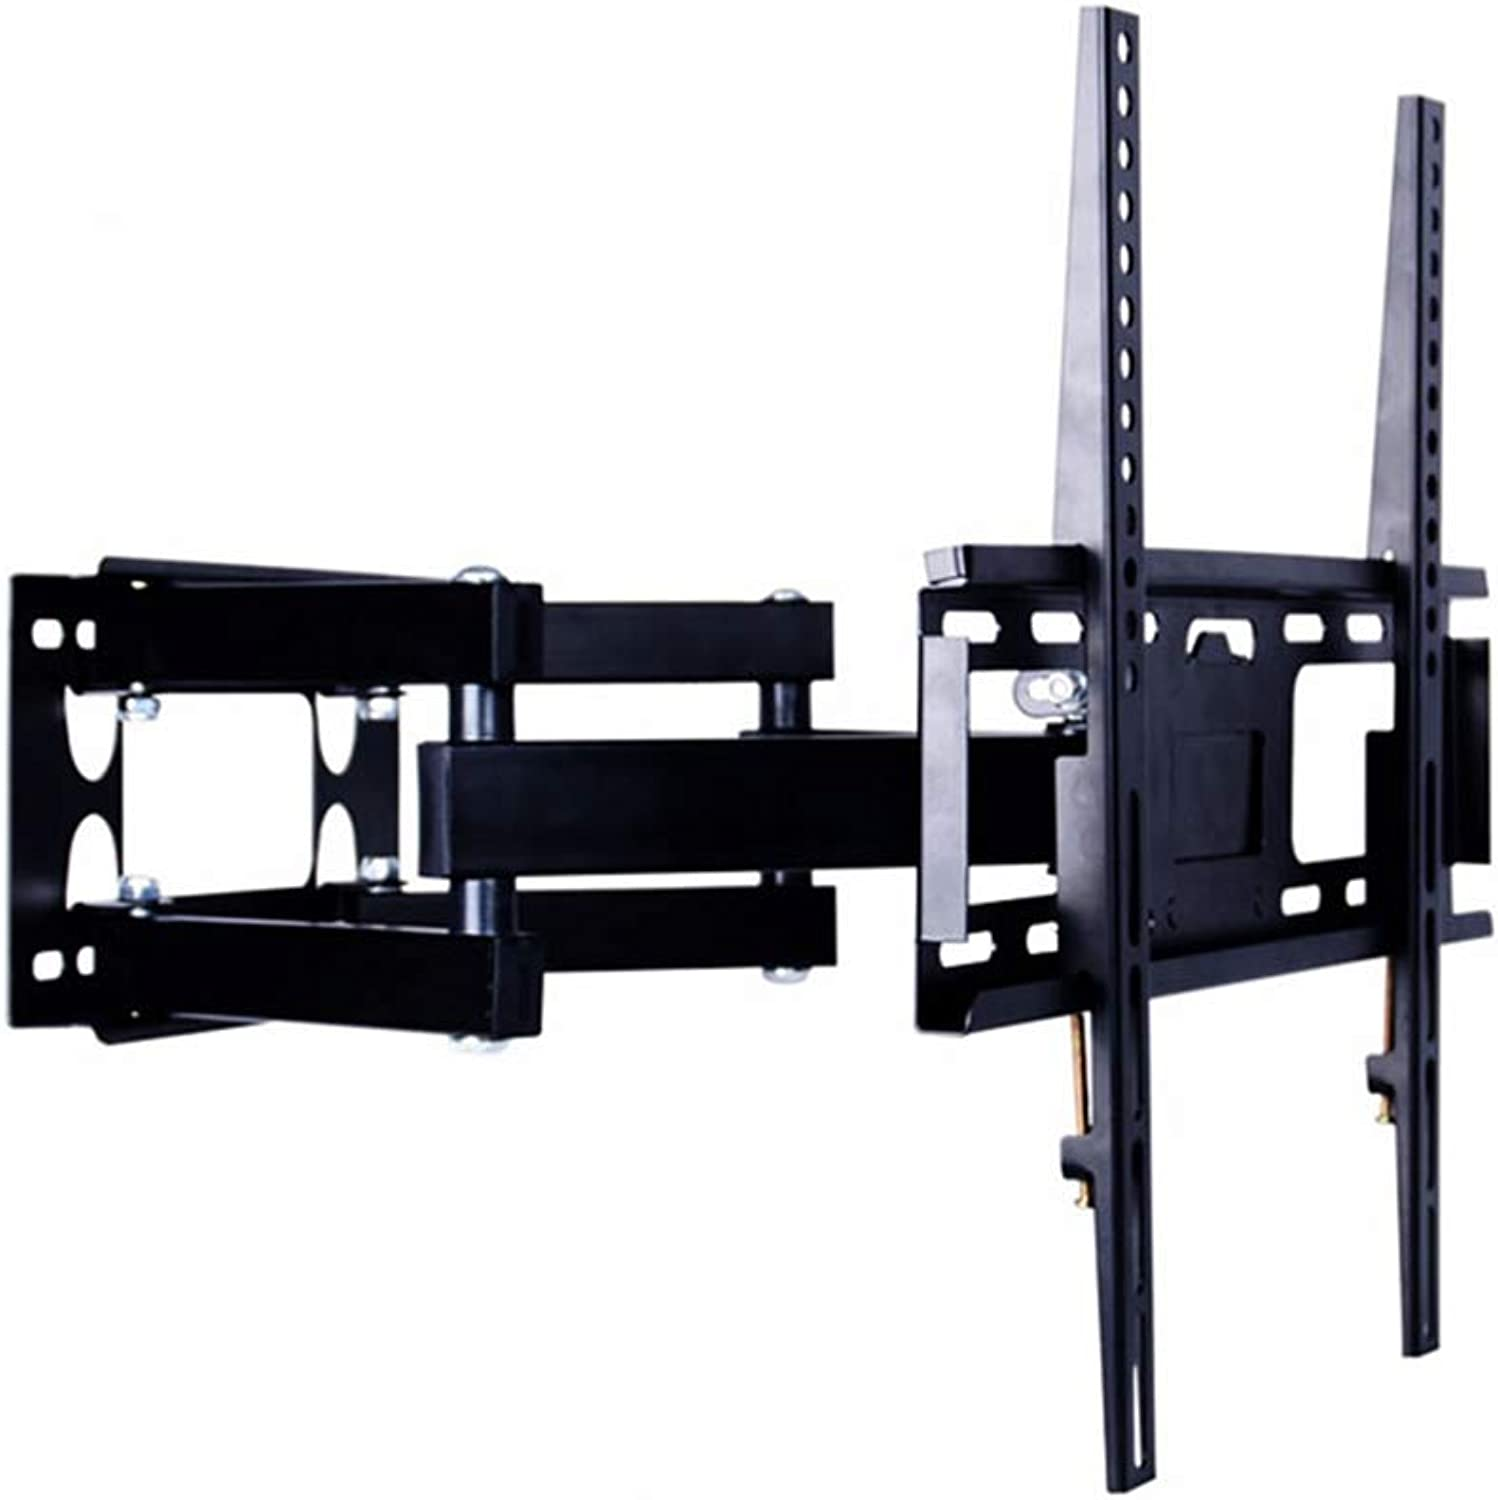 Telescopic redation TV Wall Bracket Full Motion Articulating Fits Most 26-50 Inch LED LCD Plasma Flat Screen TVs Mount